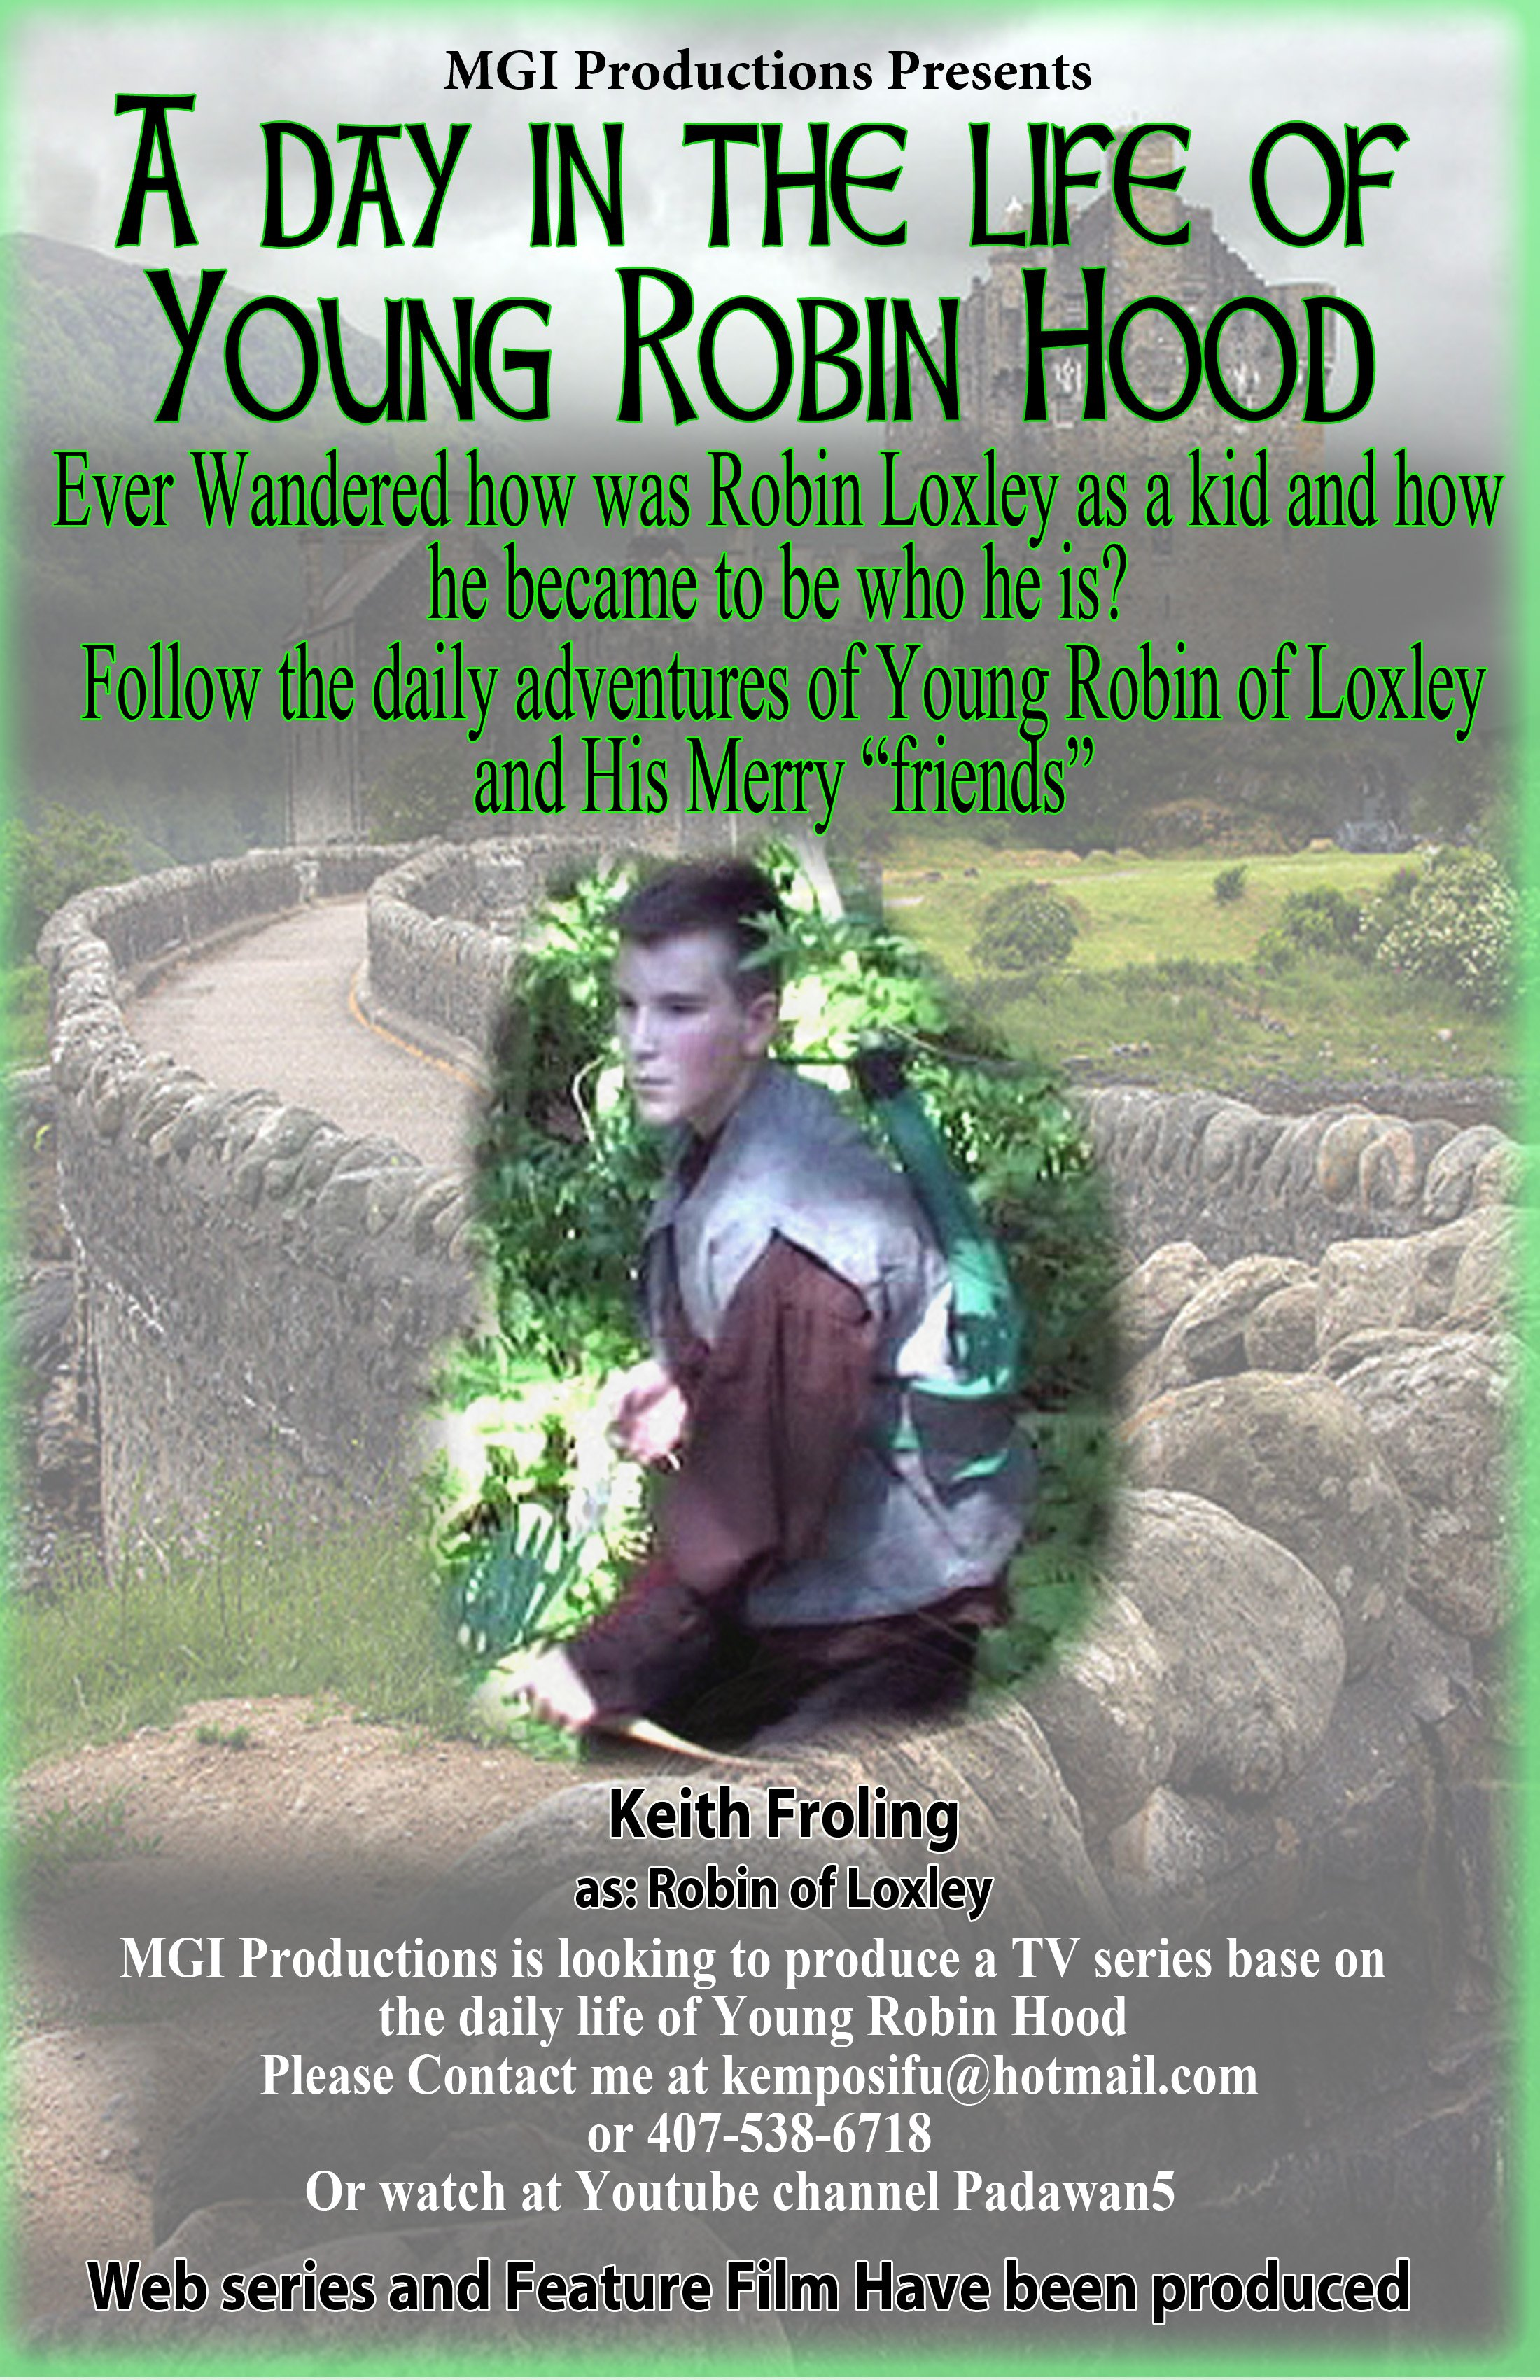 A Day in the Life of Young Robin Hood